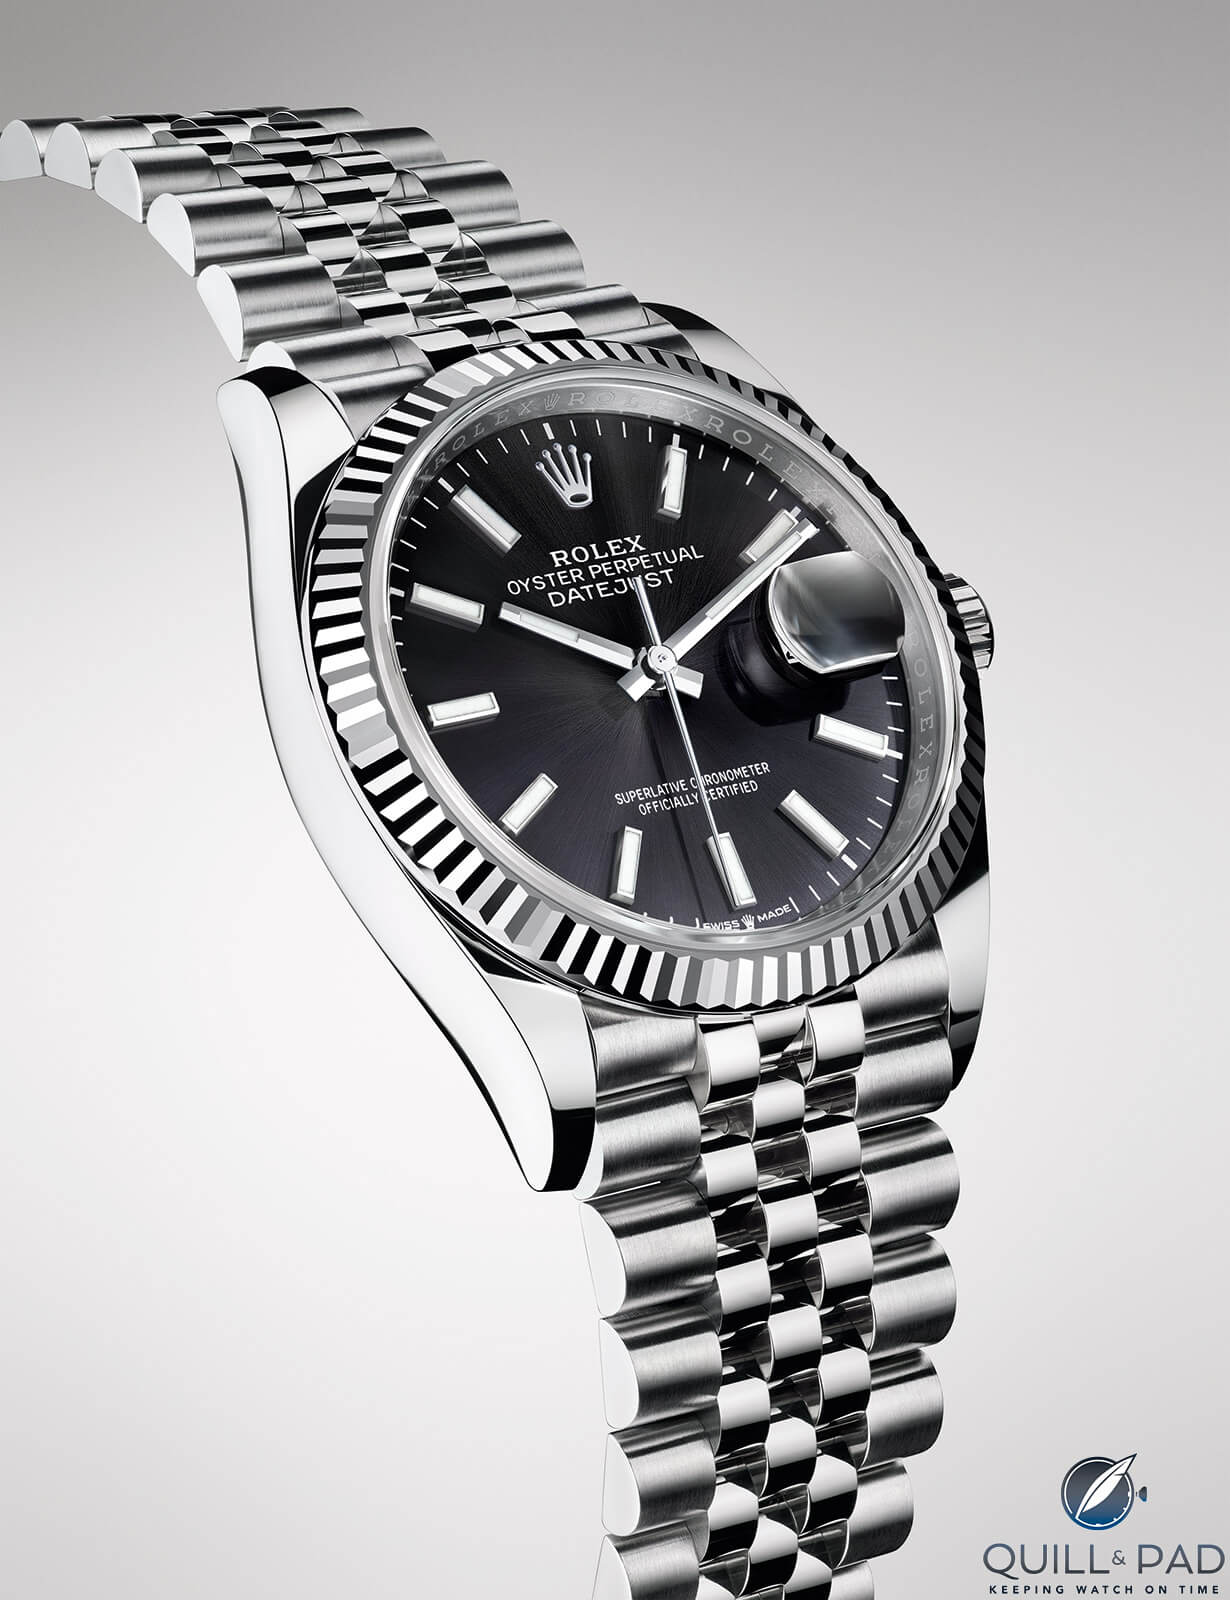 Rolex Datejust 36 Reference 126234